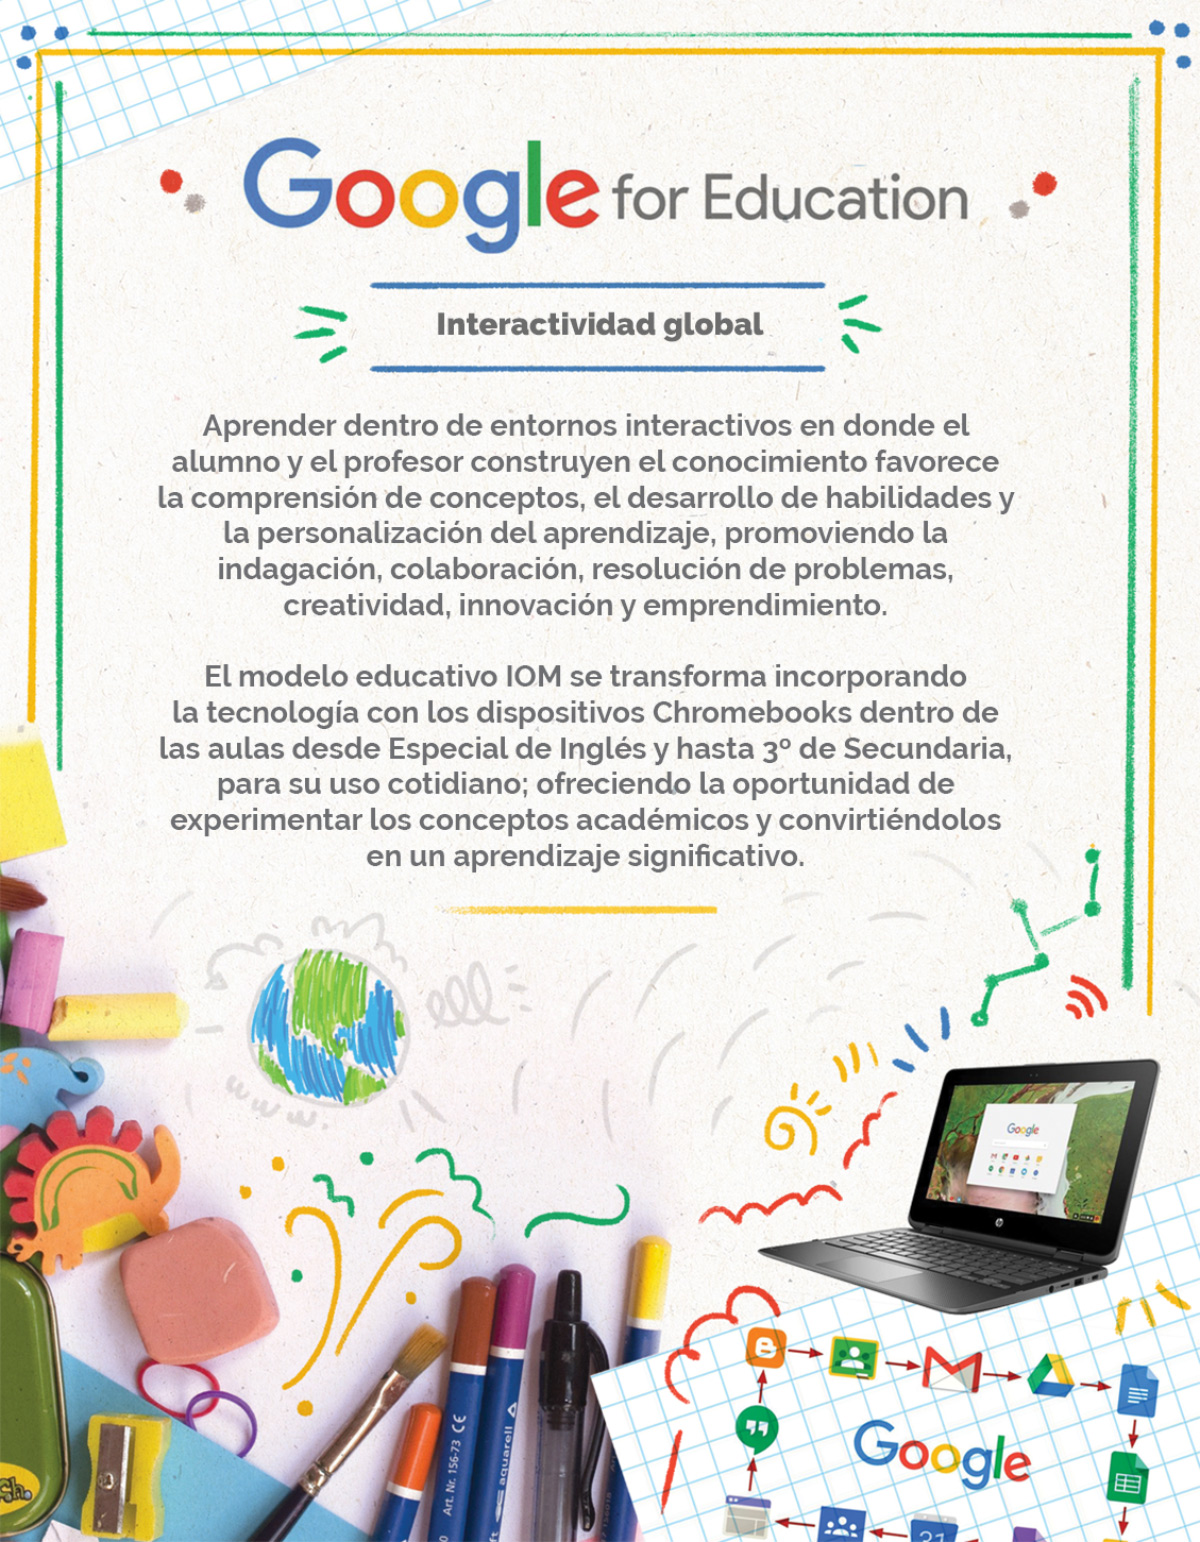 Google for Education CDMX